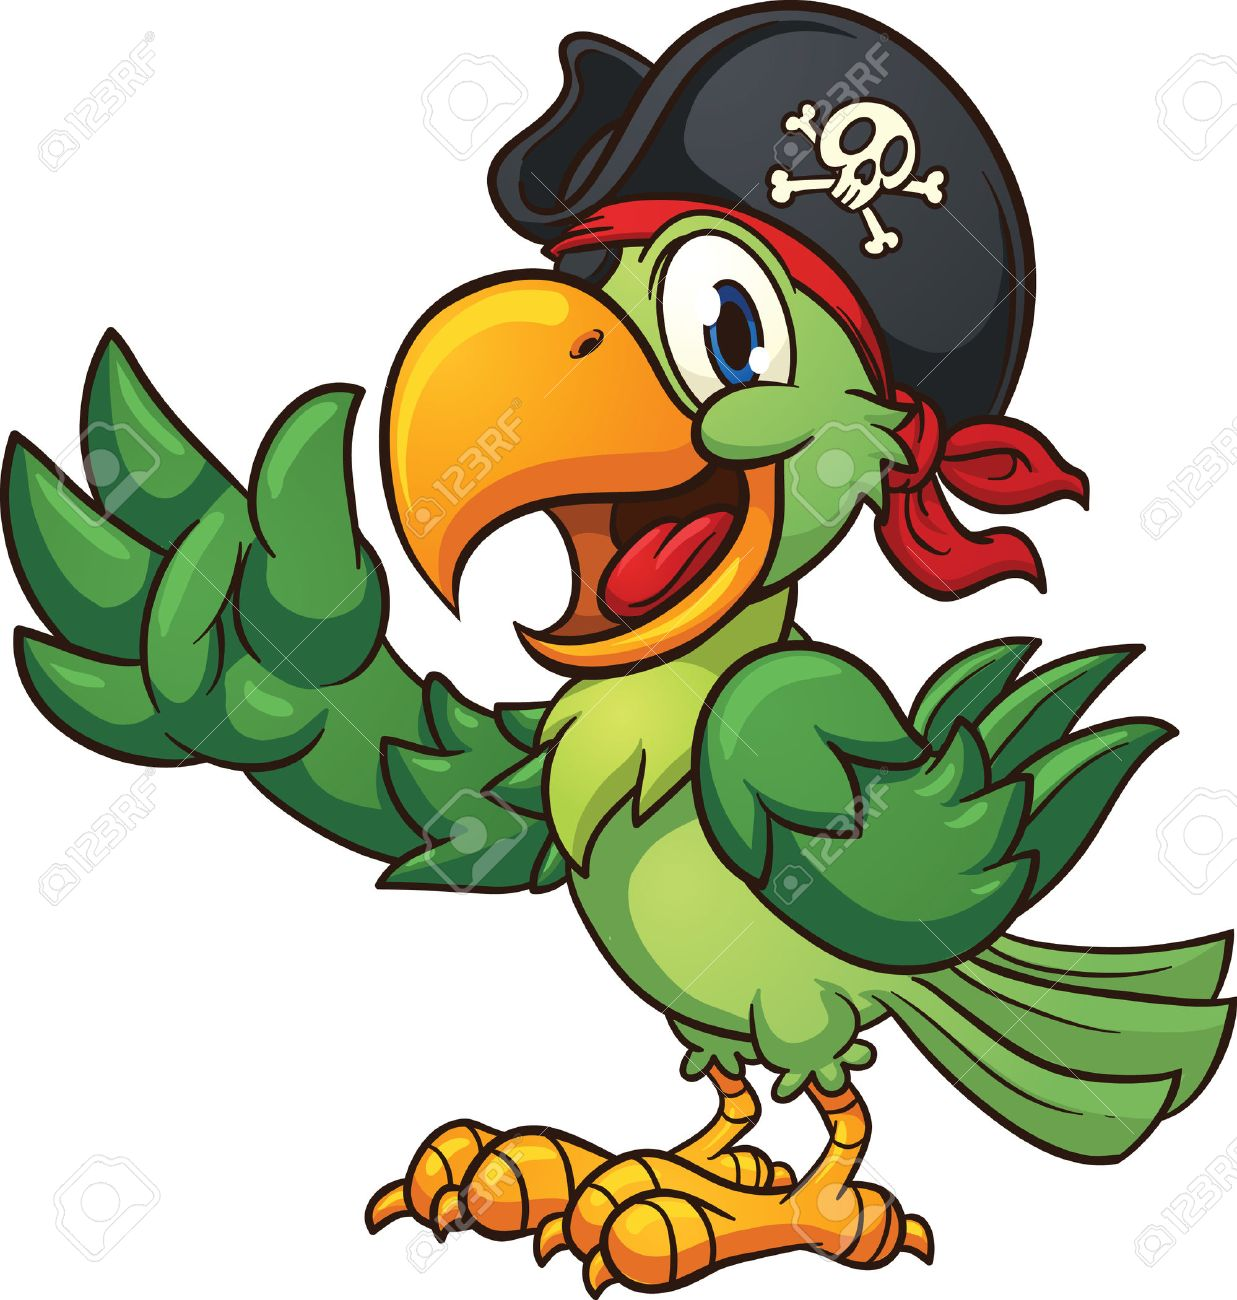 perroquet pirate cartoon pirate perroquet clip art vecteur illustration avec gradients simples tout